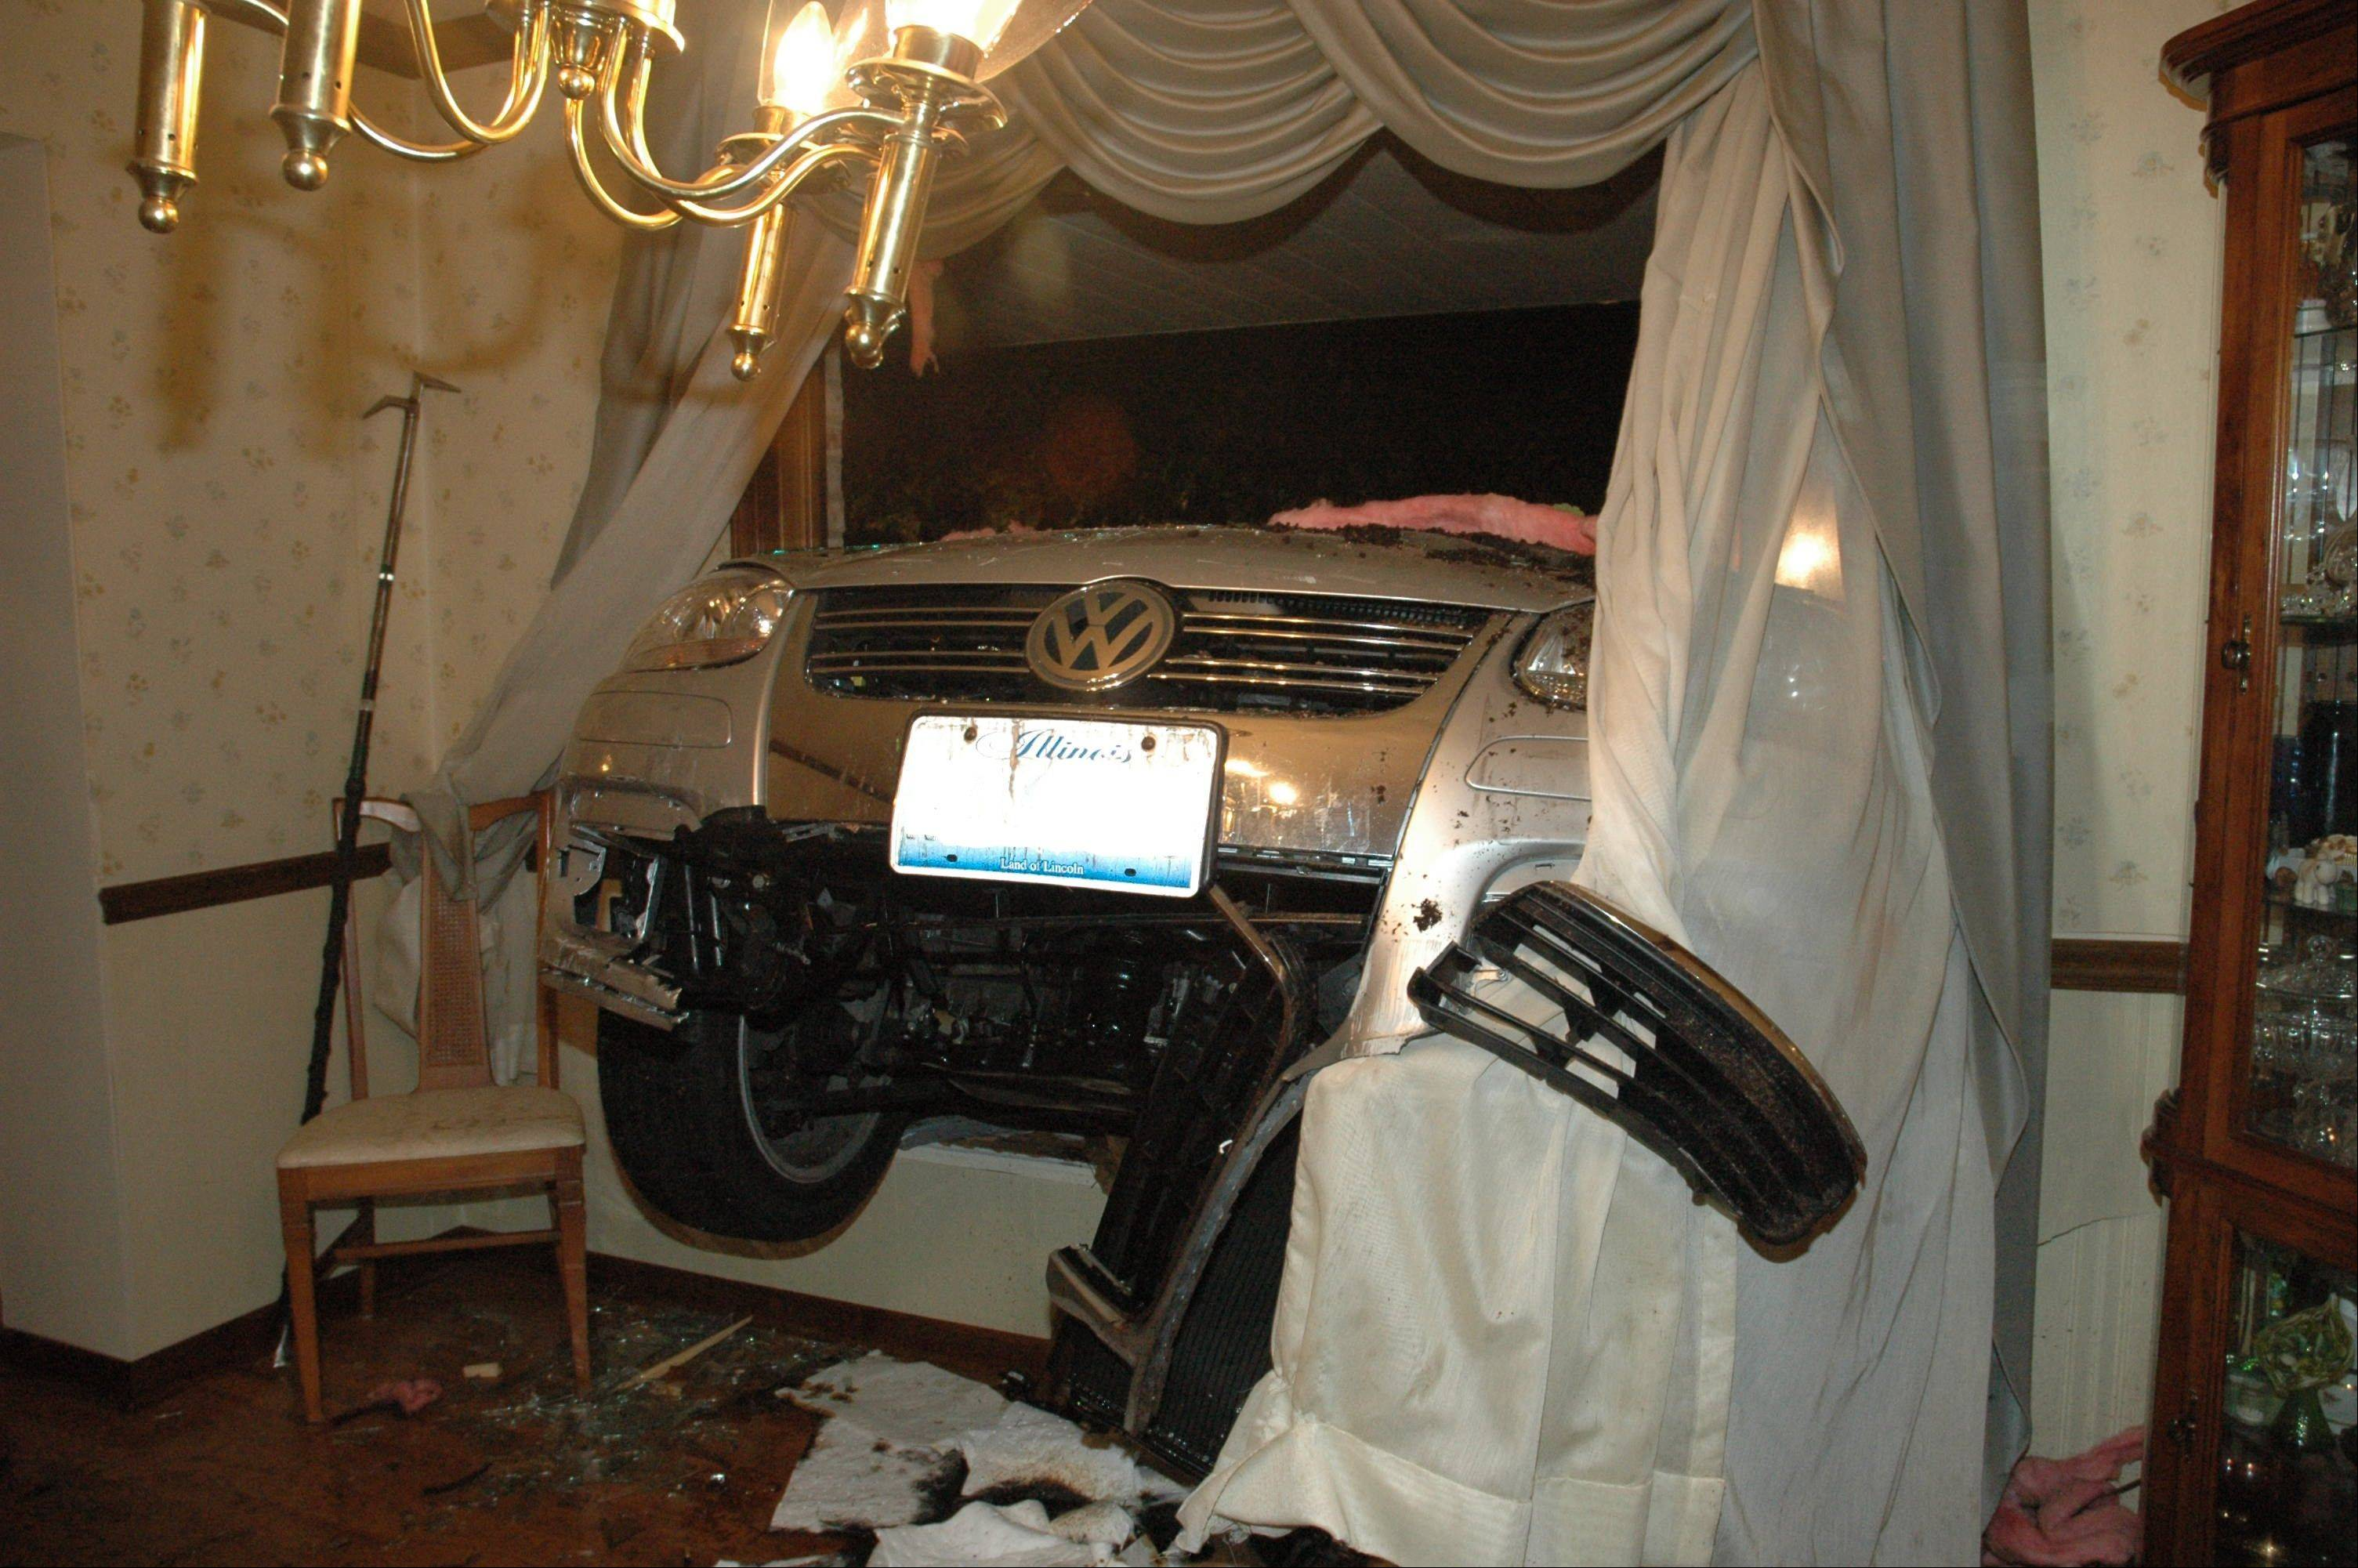 No one was injured last summer when Joseph Wheeler drove this car through the dining room window of a Naperville home.